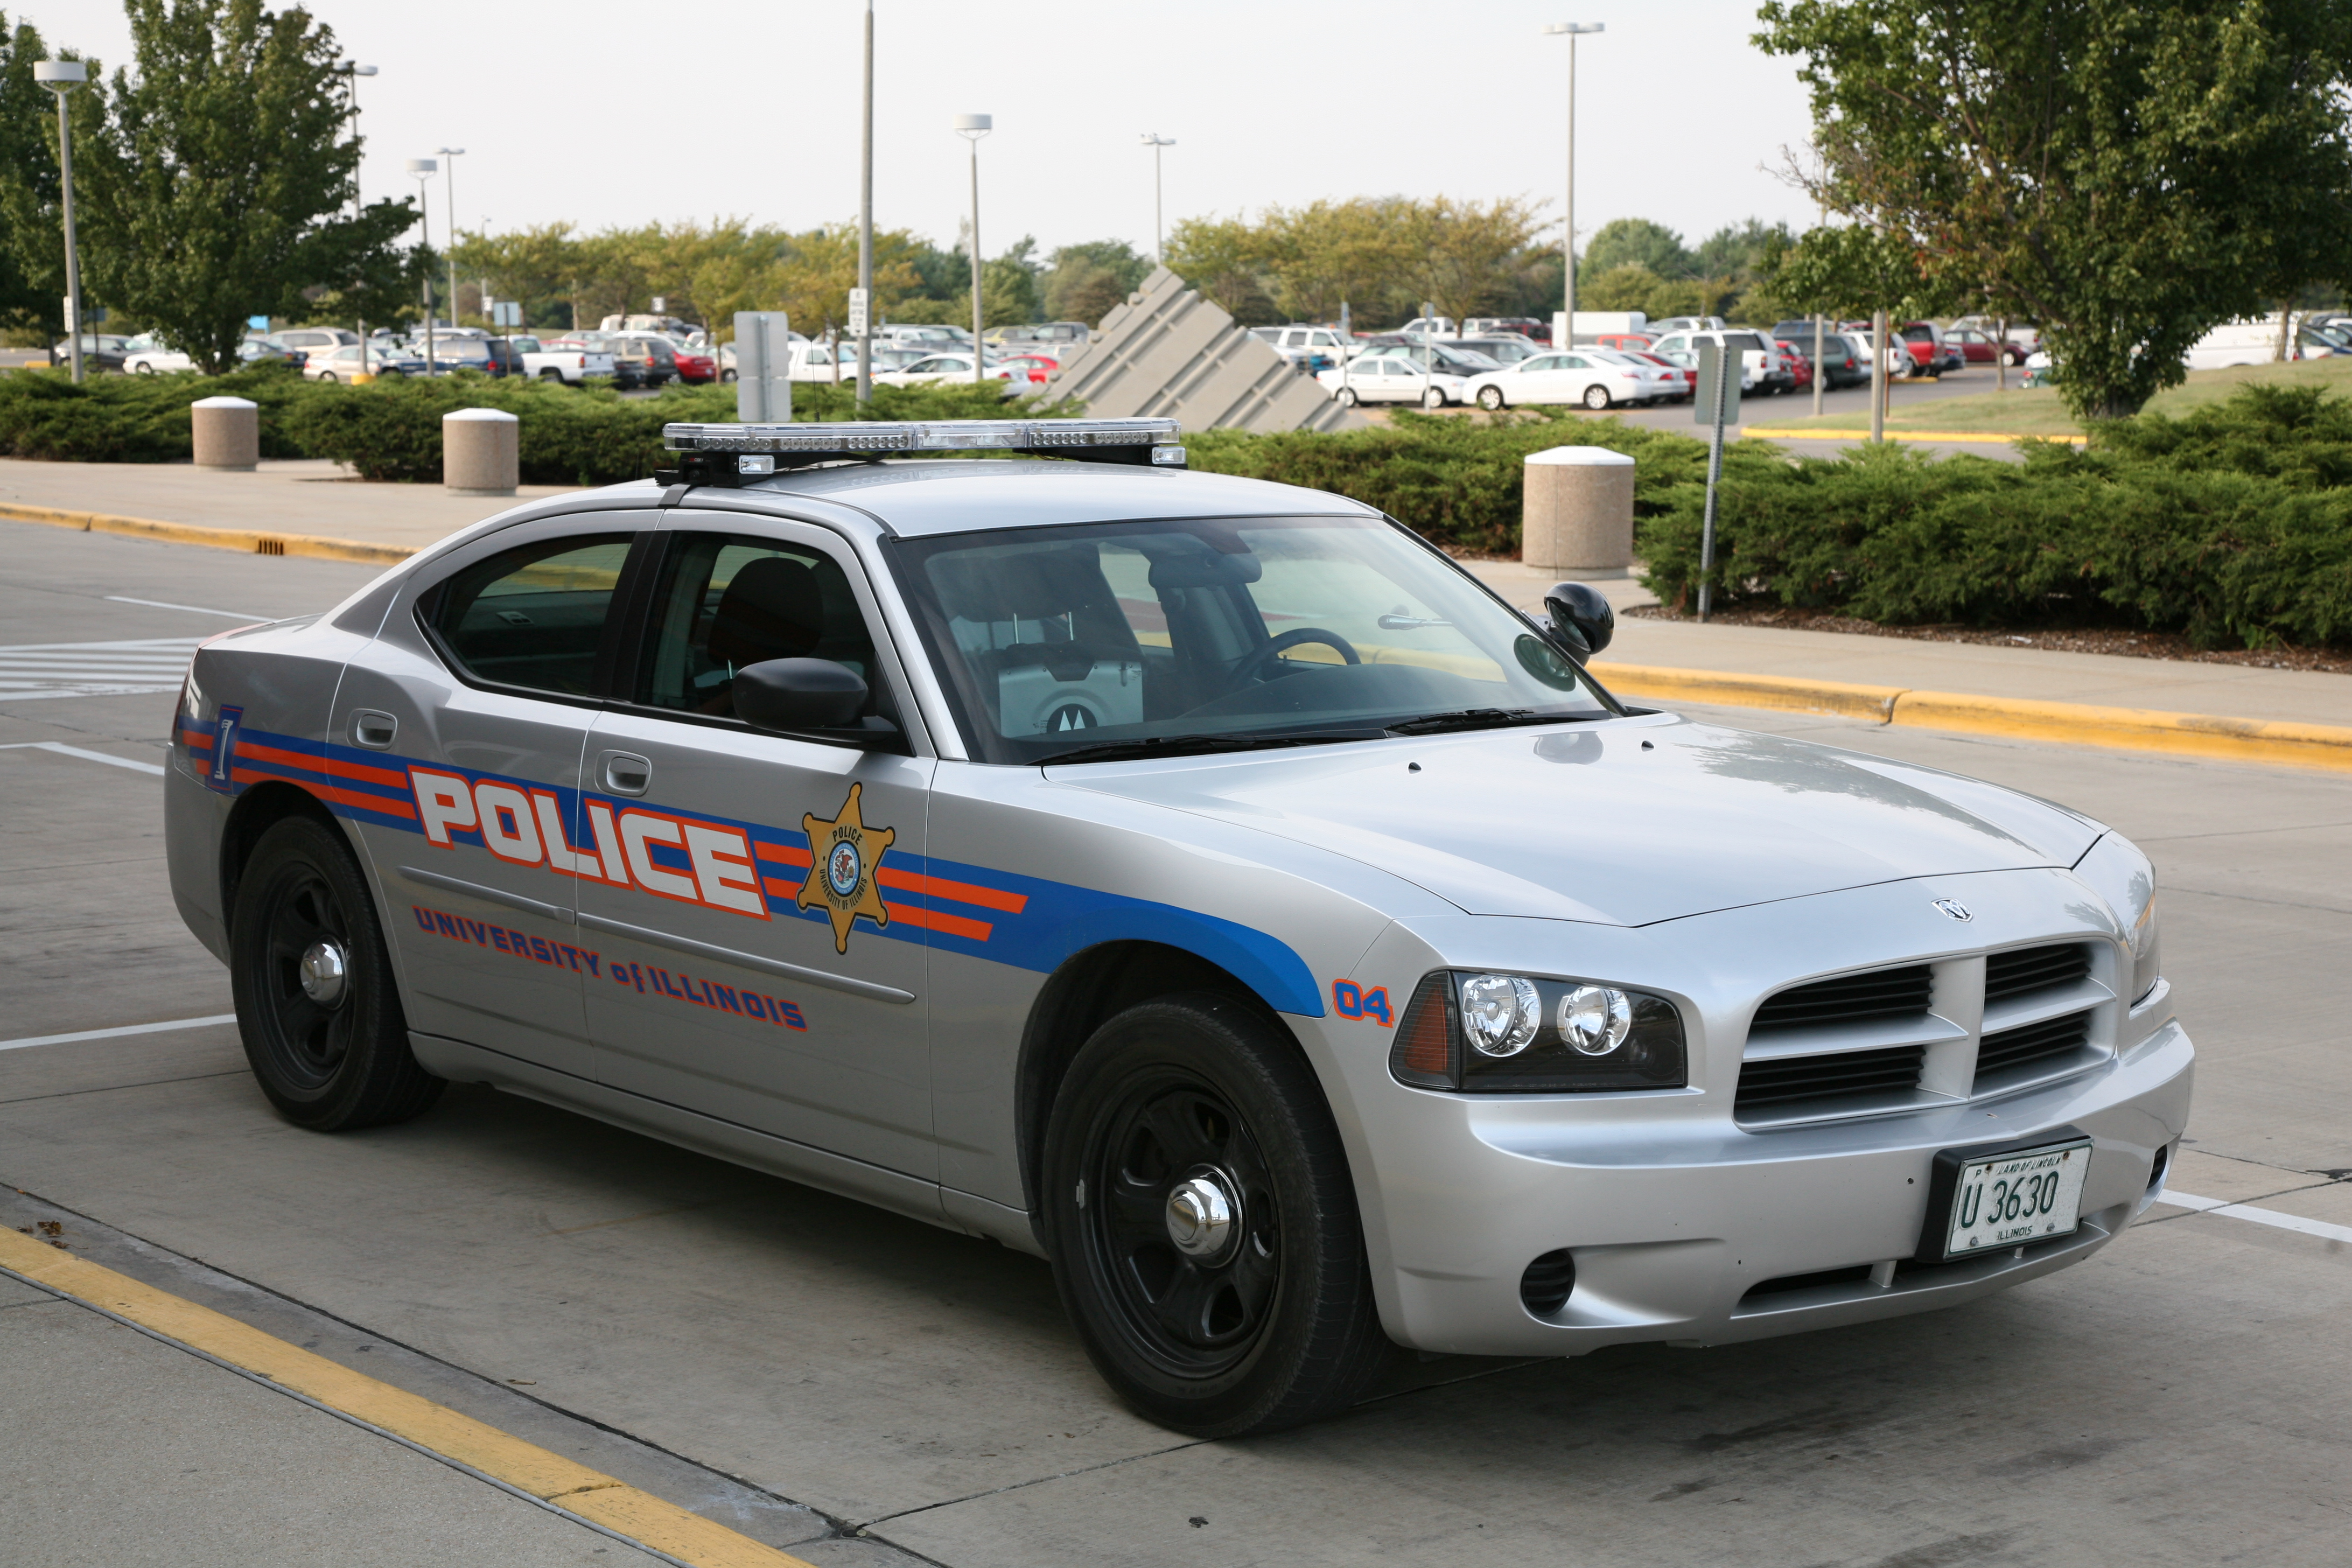 File Dodge Charger Lx Uiuc Police Car Jpg